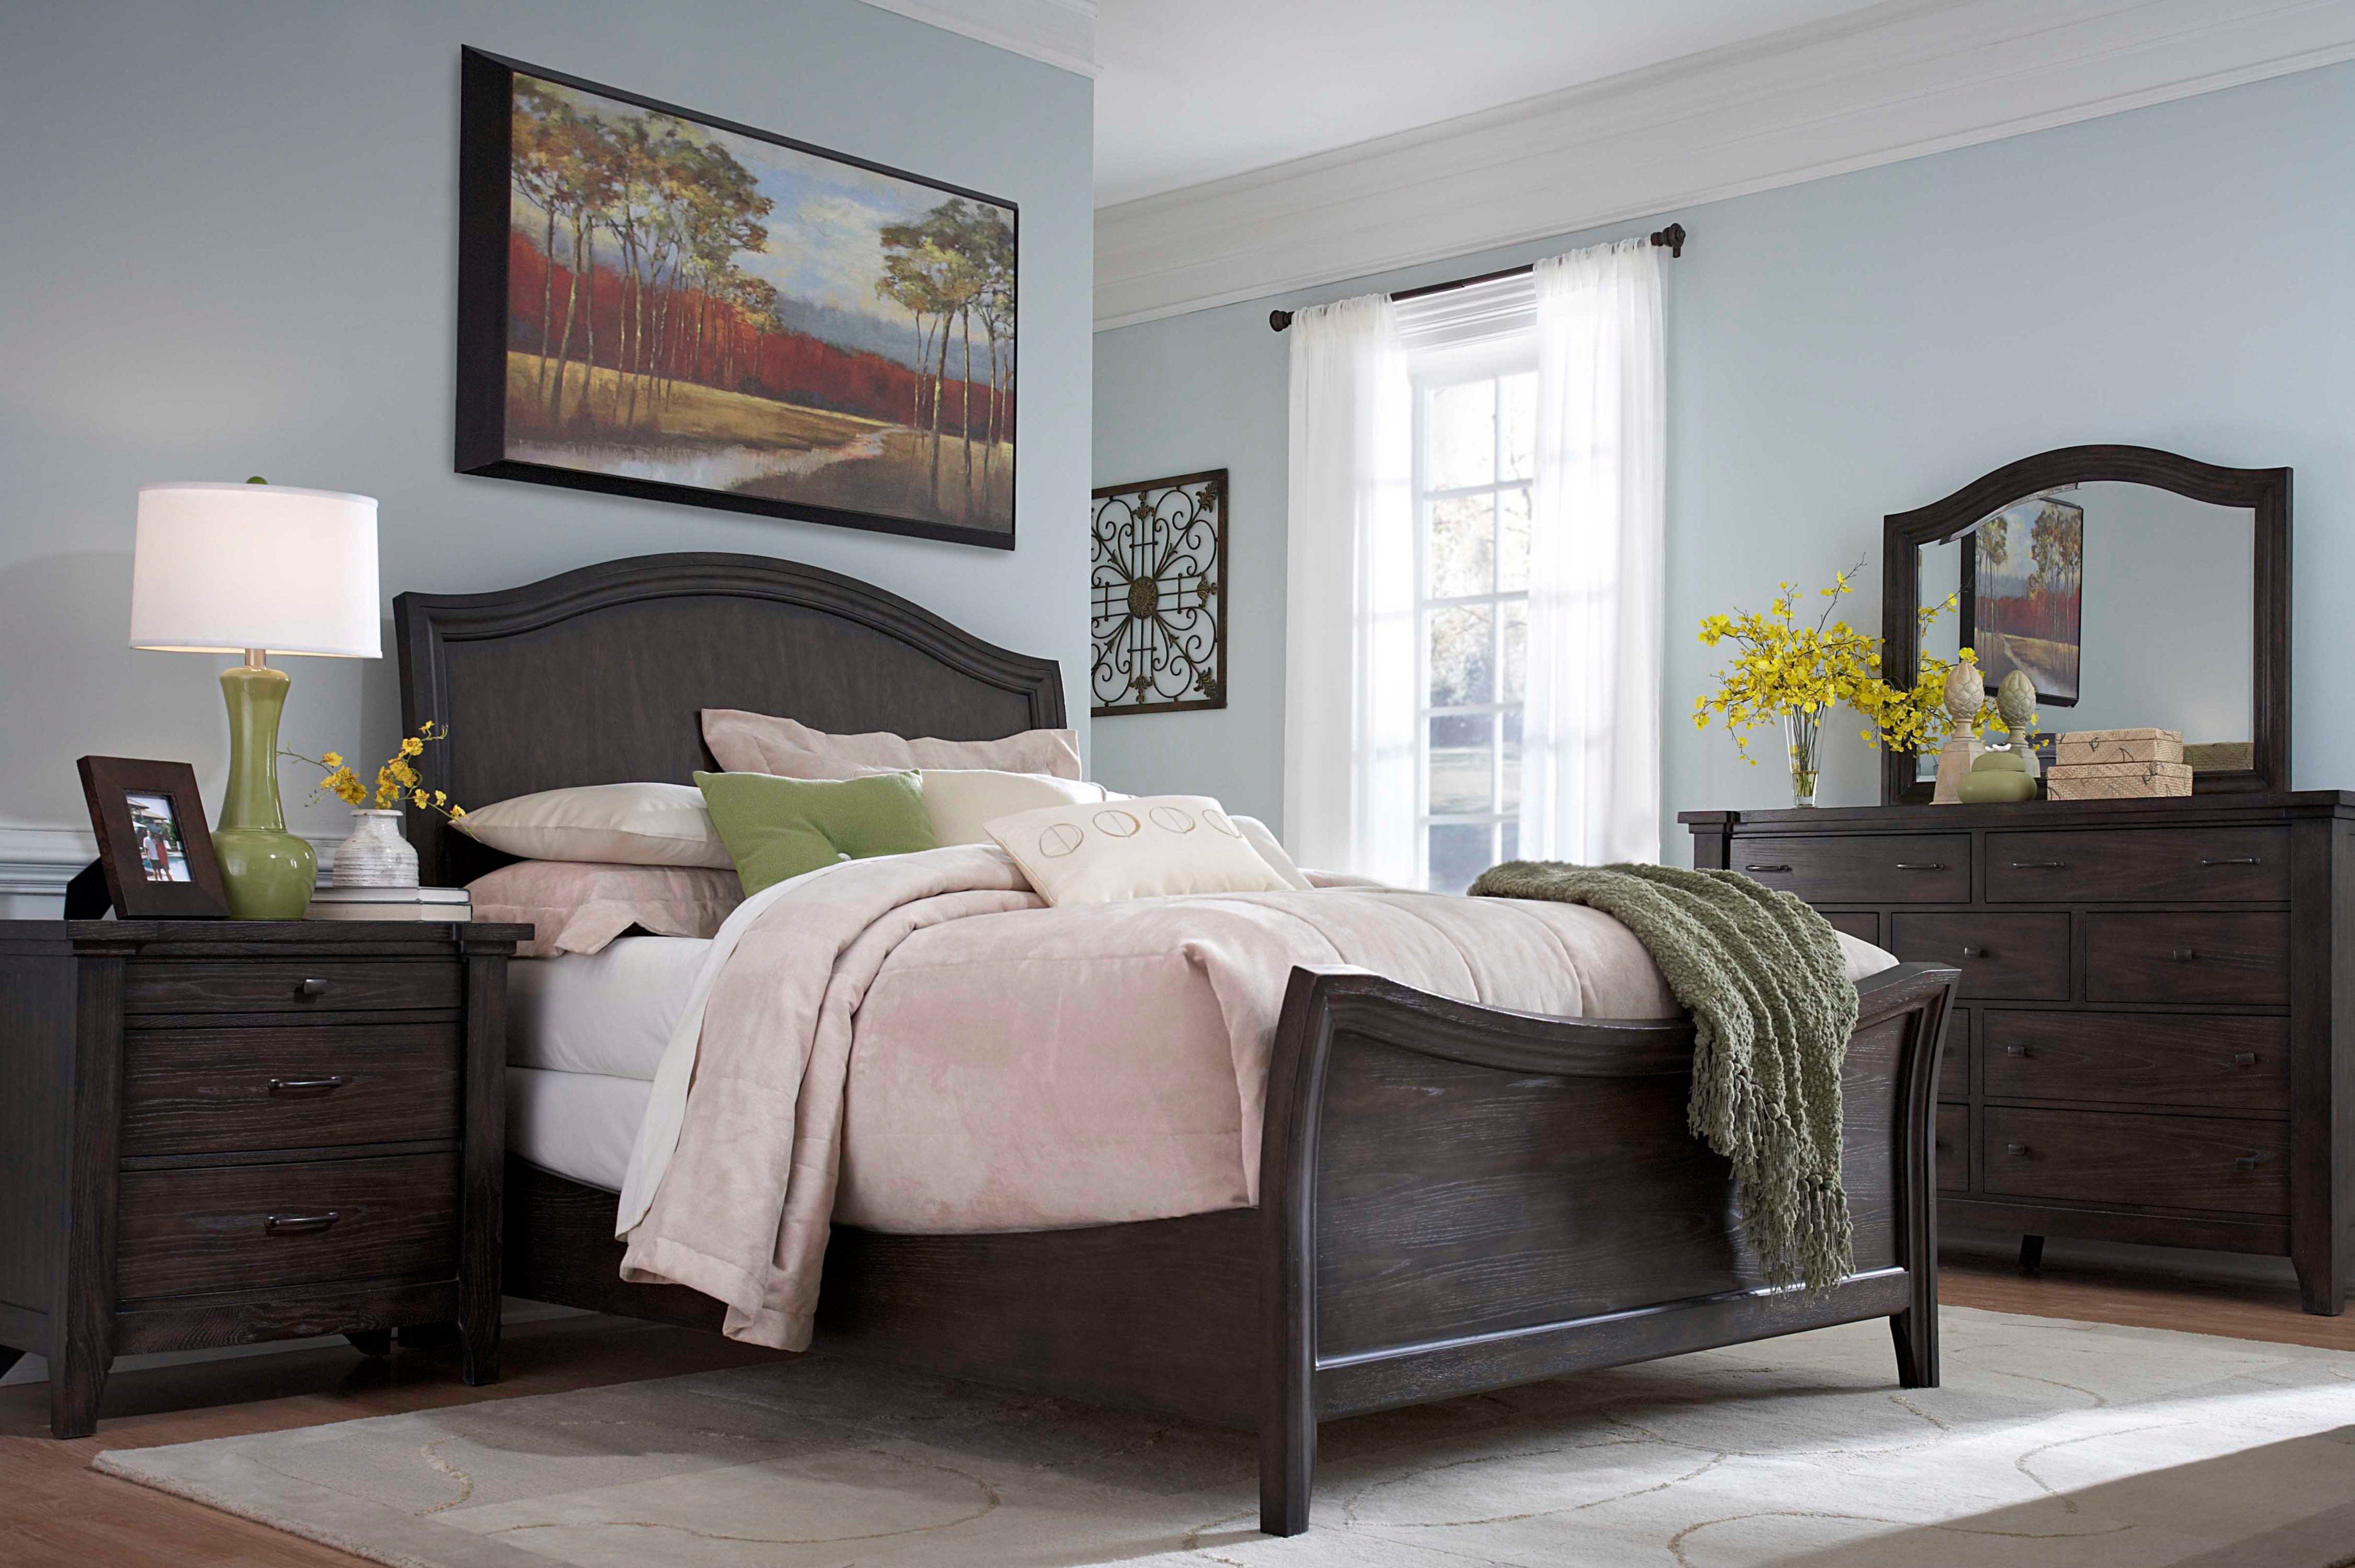 Best Bedroom Affordable Broyhill Bedroom Design For Peace And With Pictures